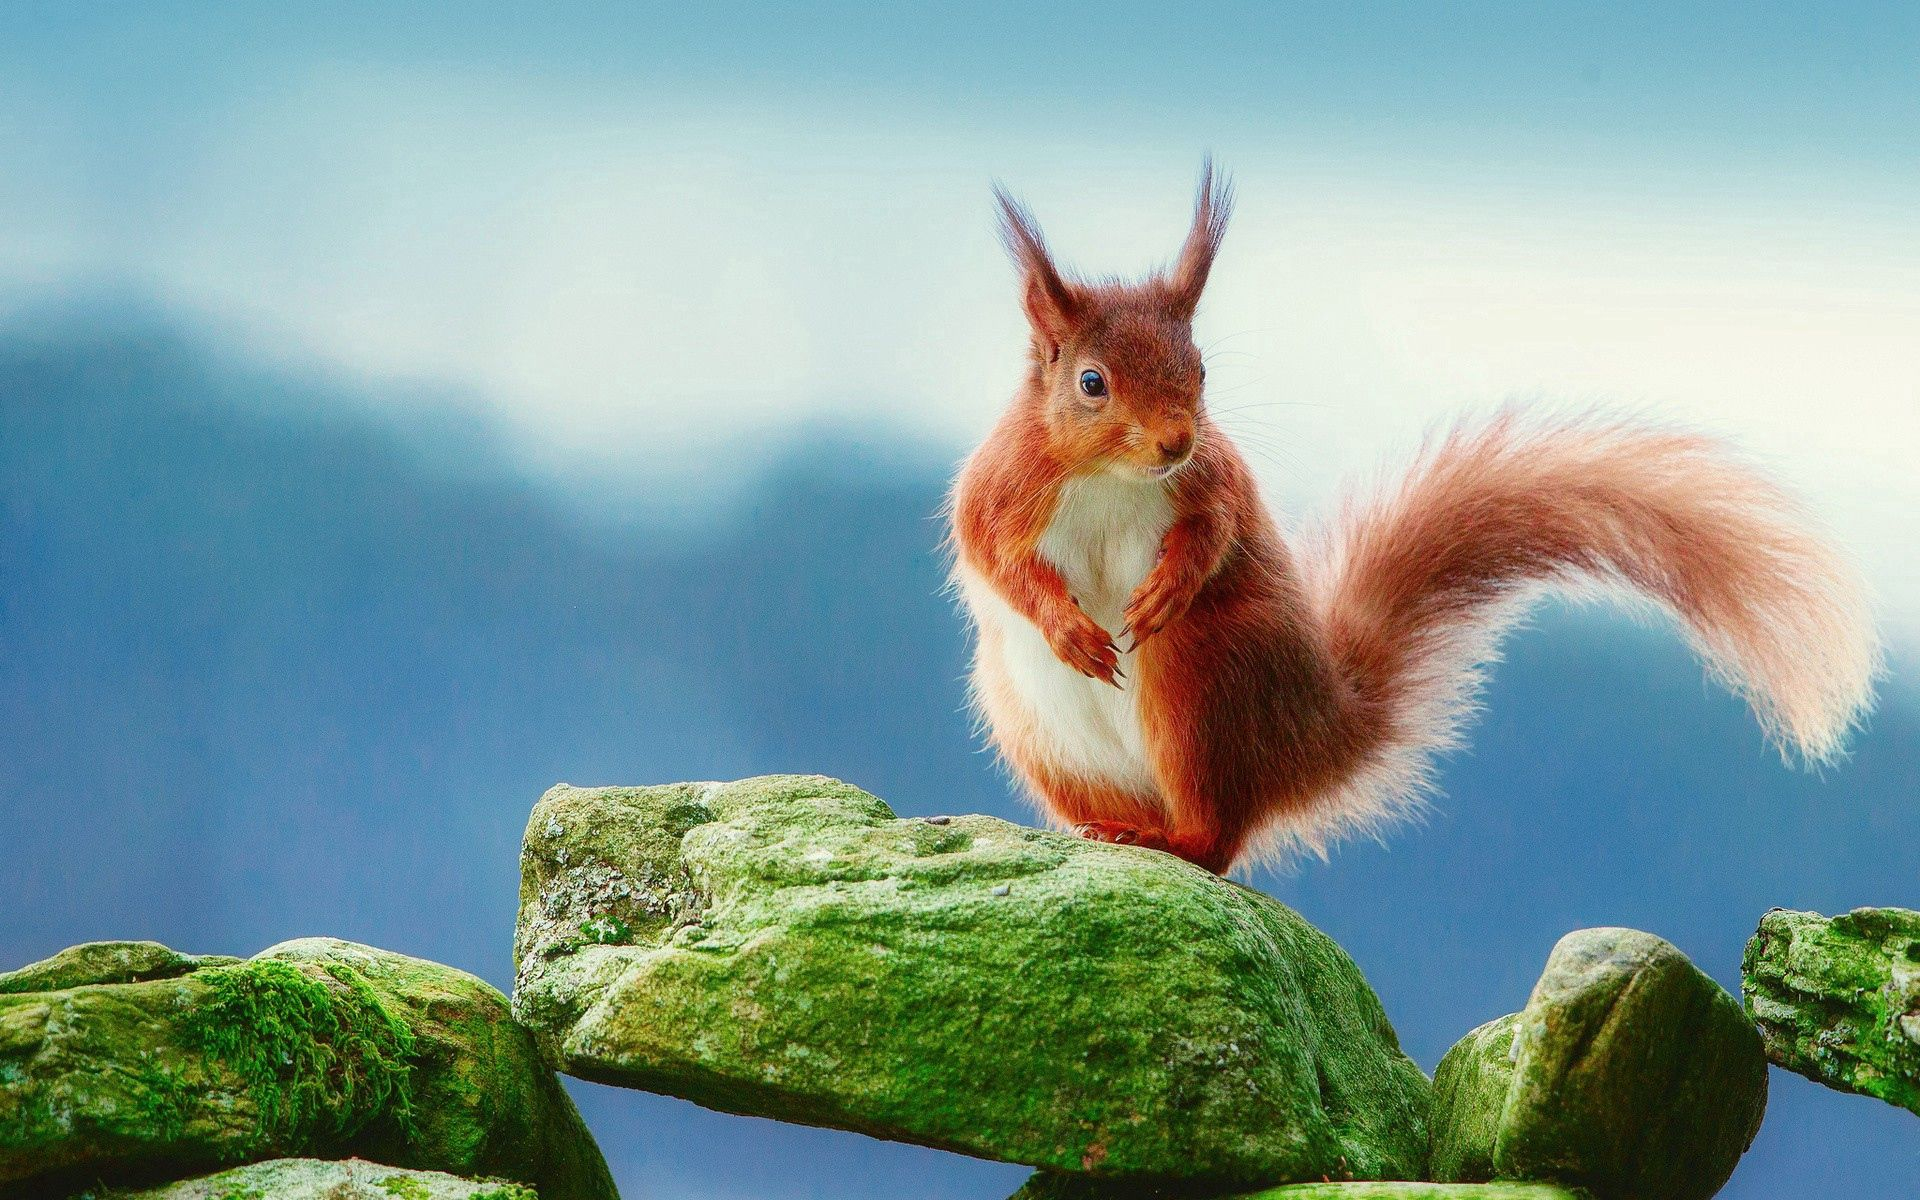 63950 download wallpaper Animals, Squirrel, Stones, Moss screensavers and pictures for free